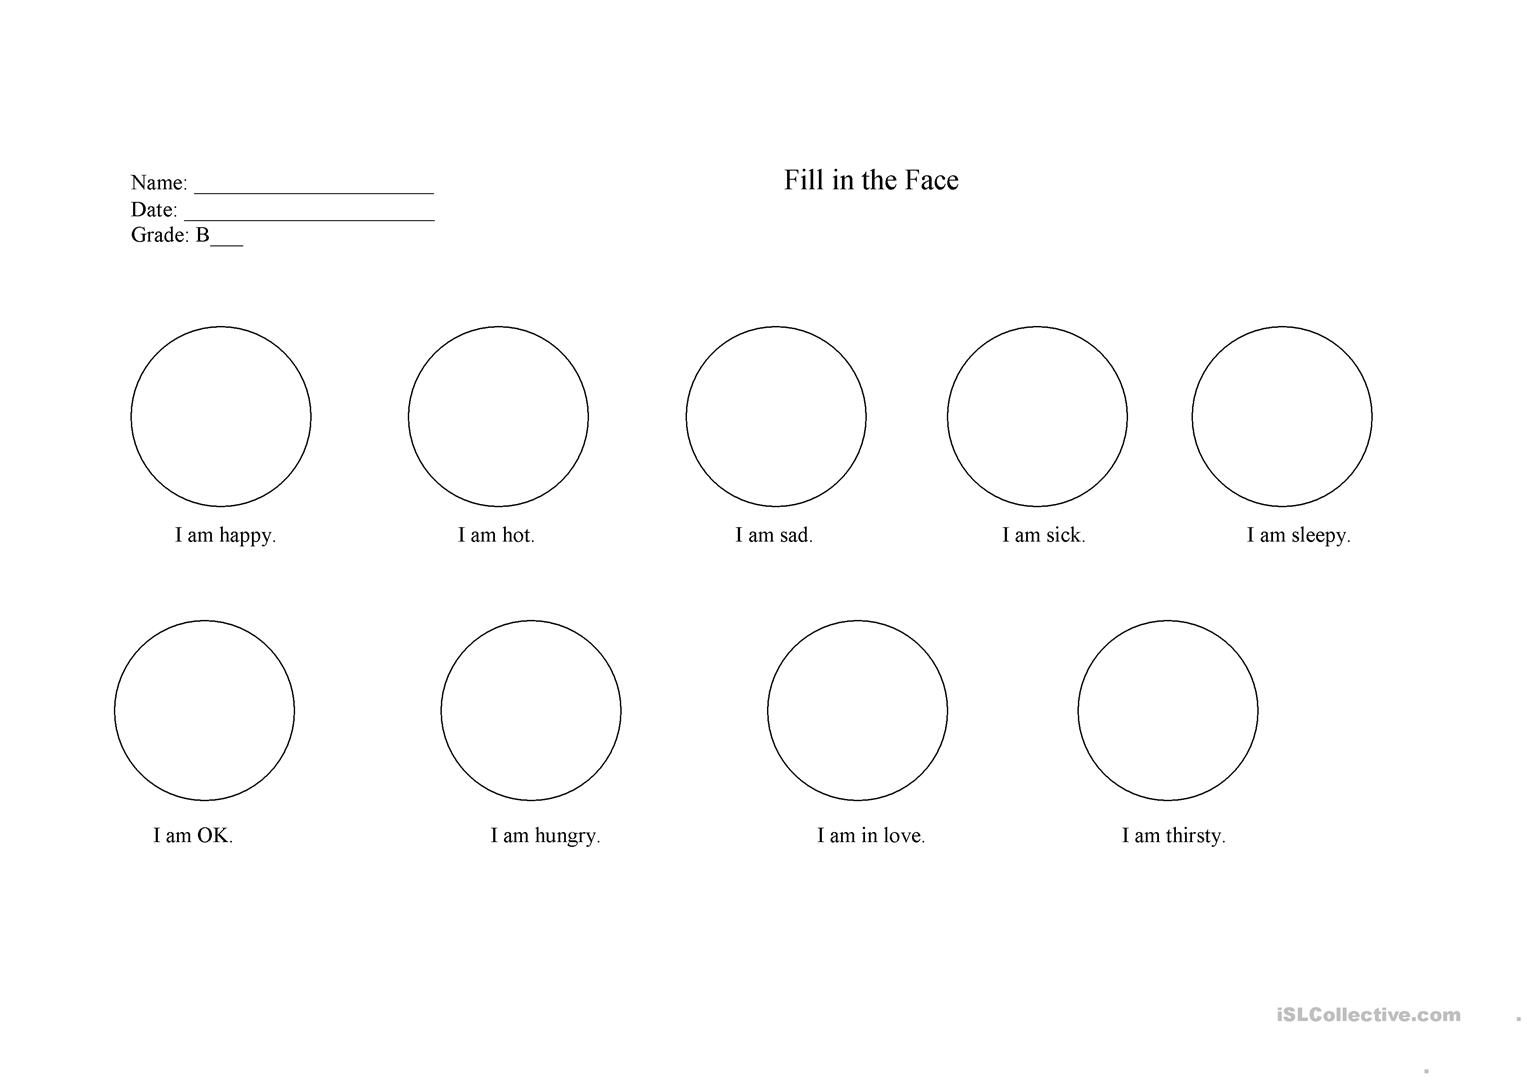 Fill In The Face Worksheet